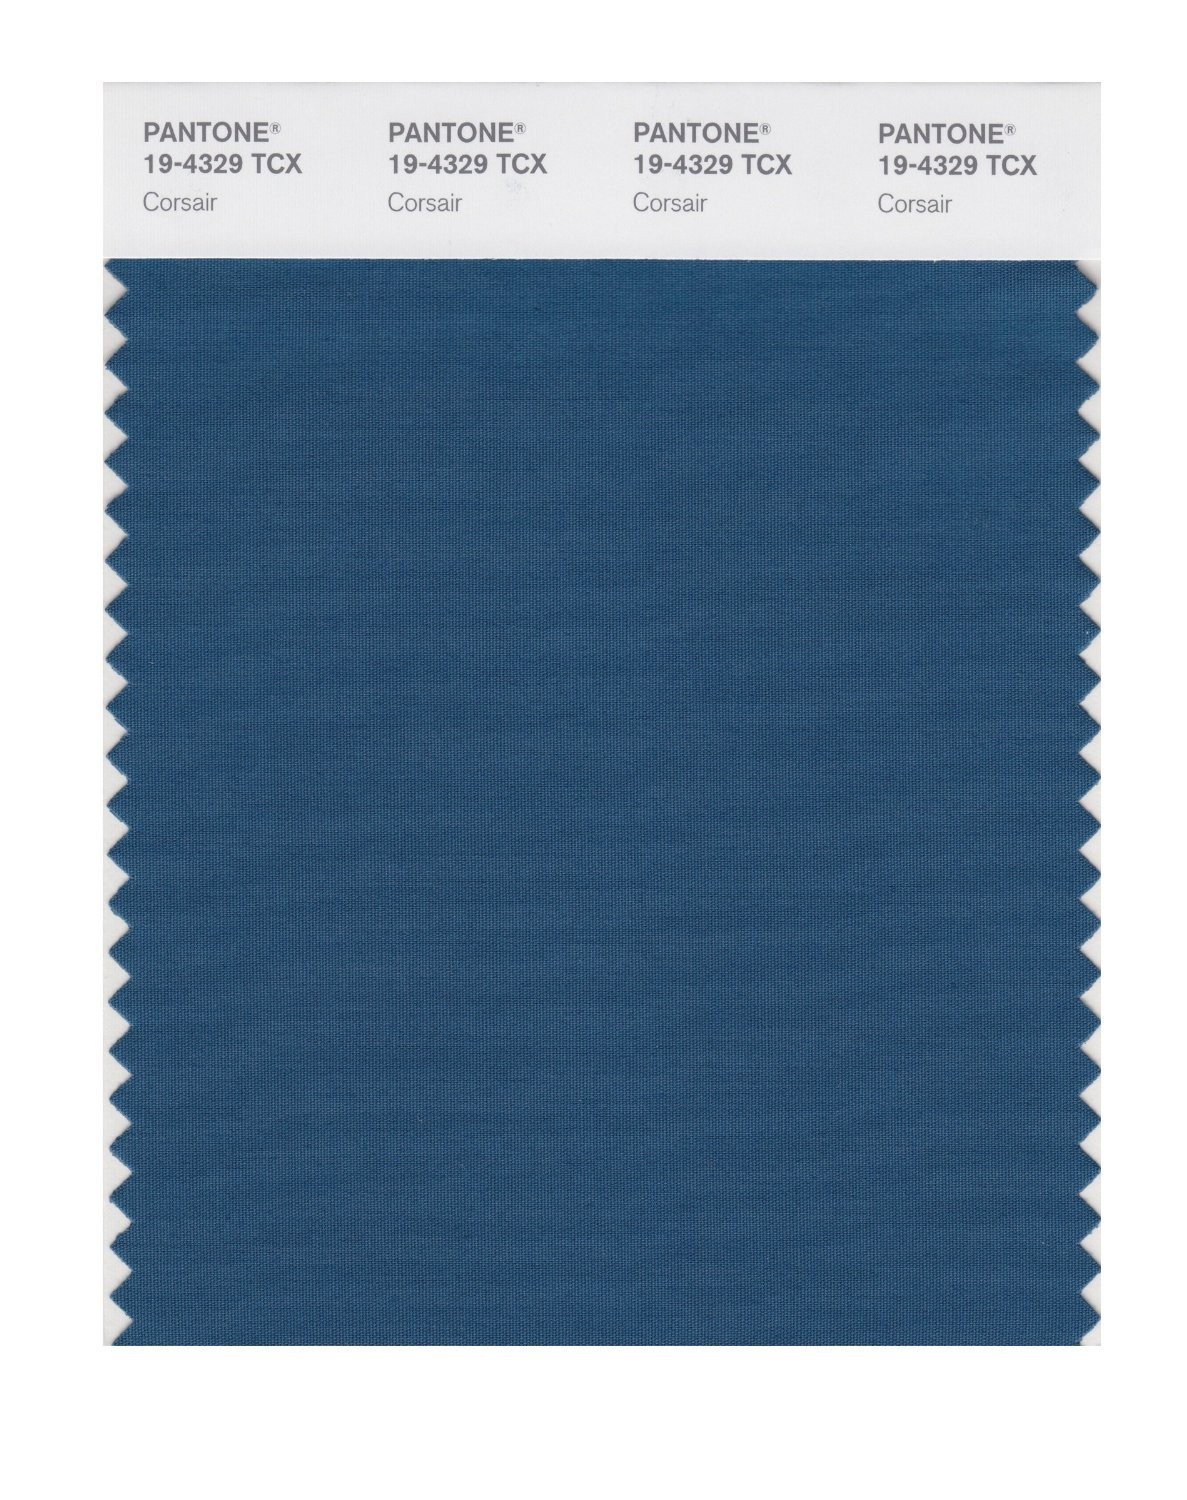 Pantone 19-4329 TCX Swatch Card Corsair